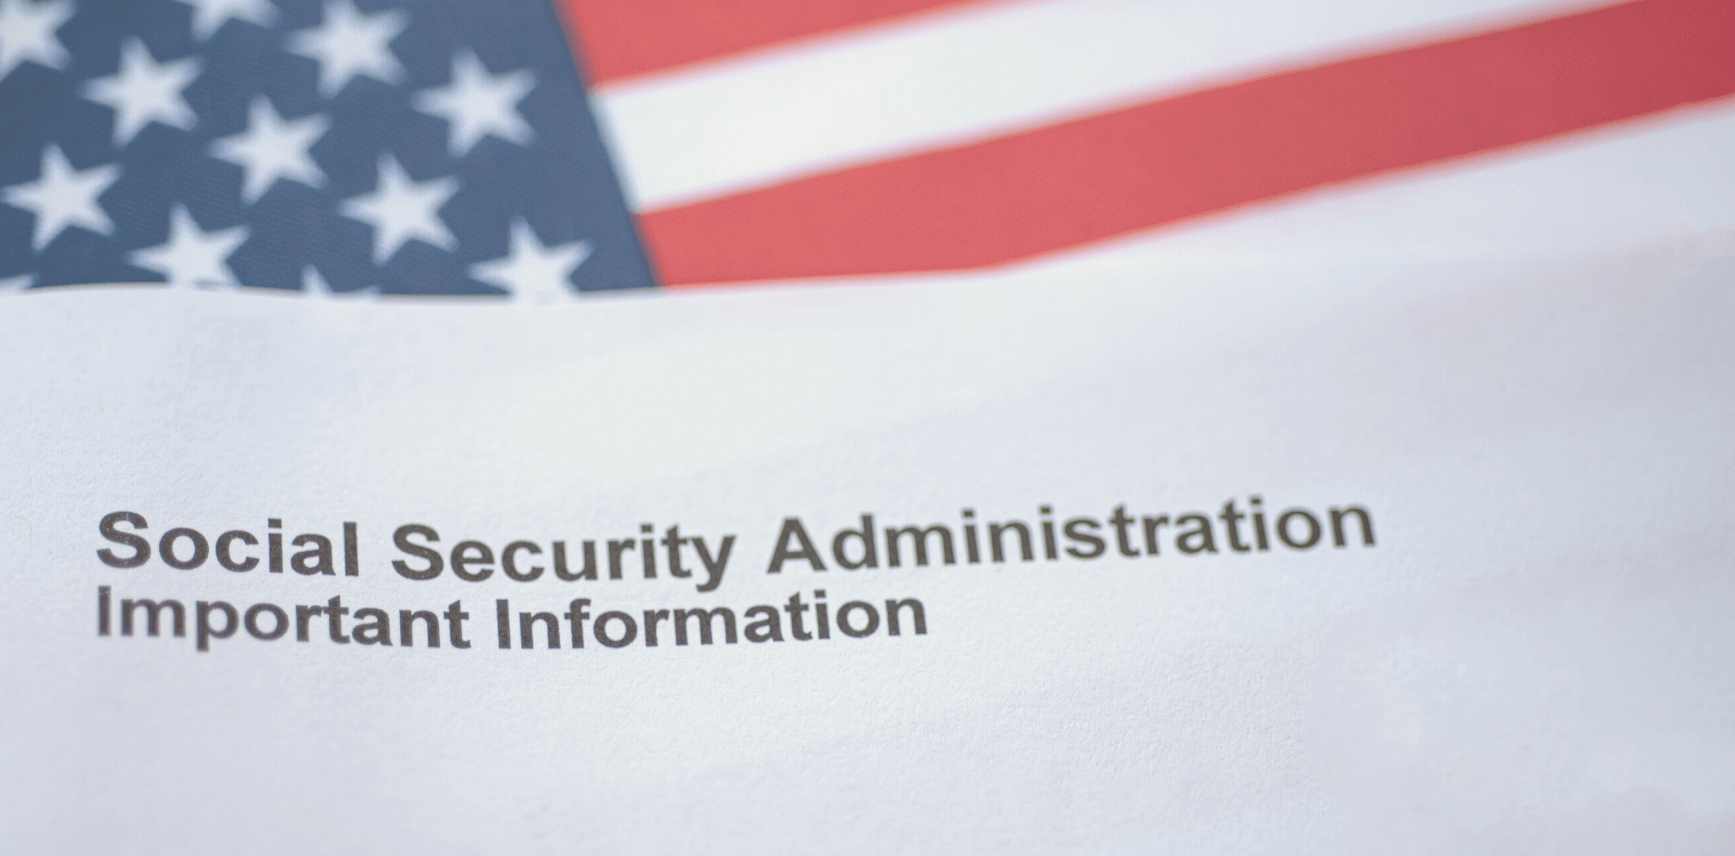 SSA important information for SSI recipients